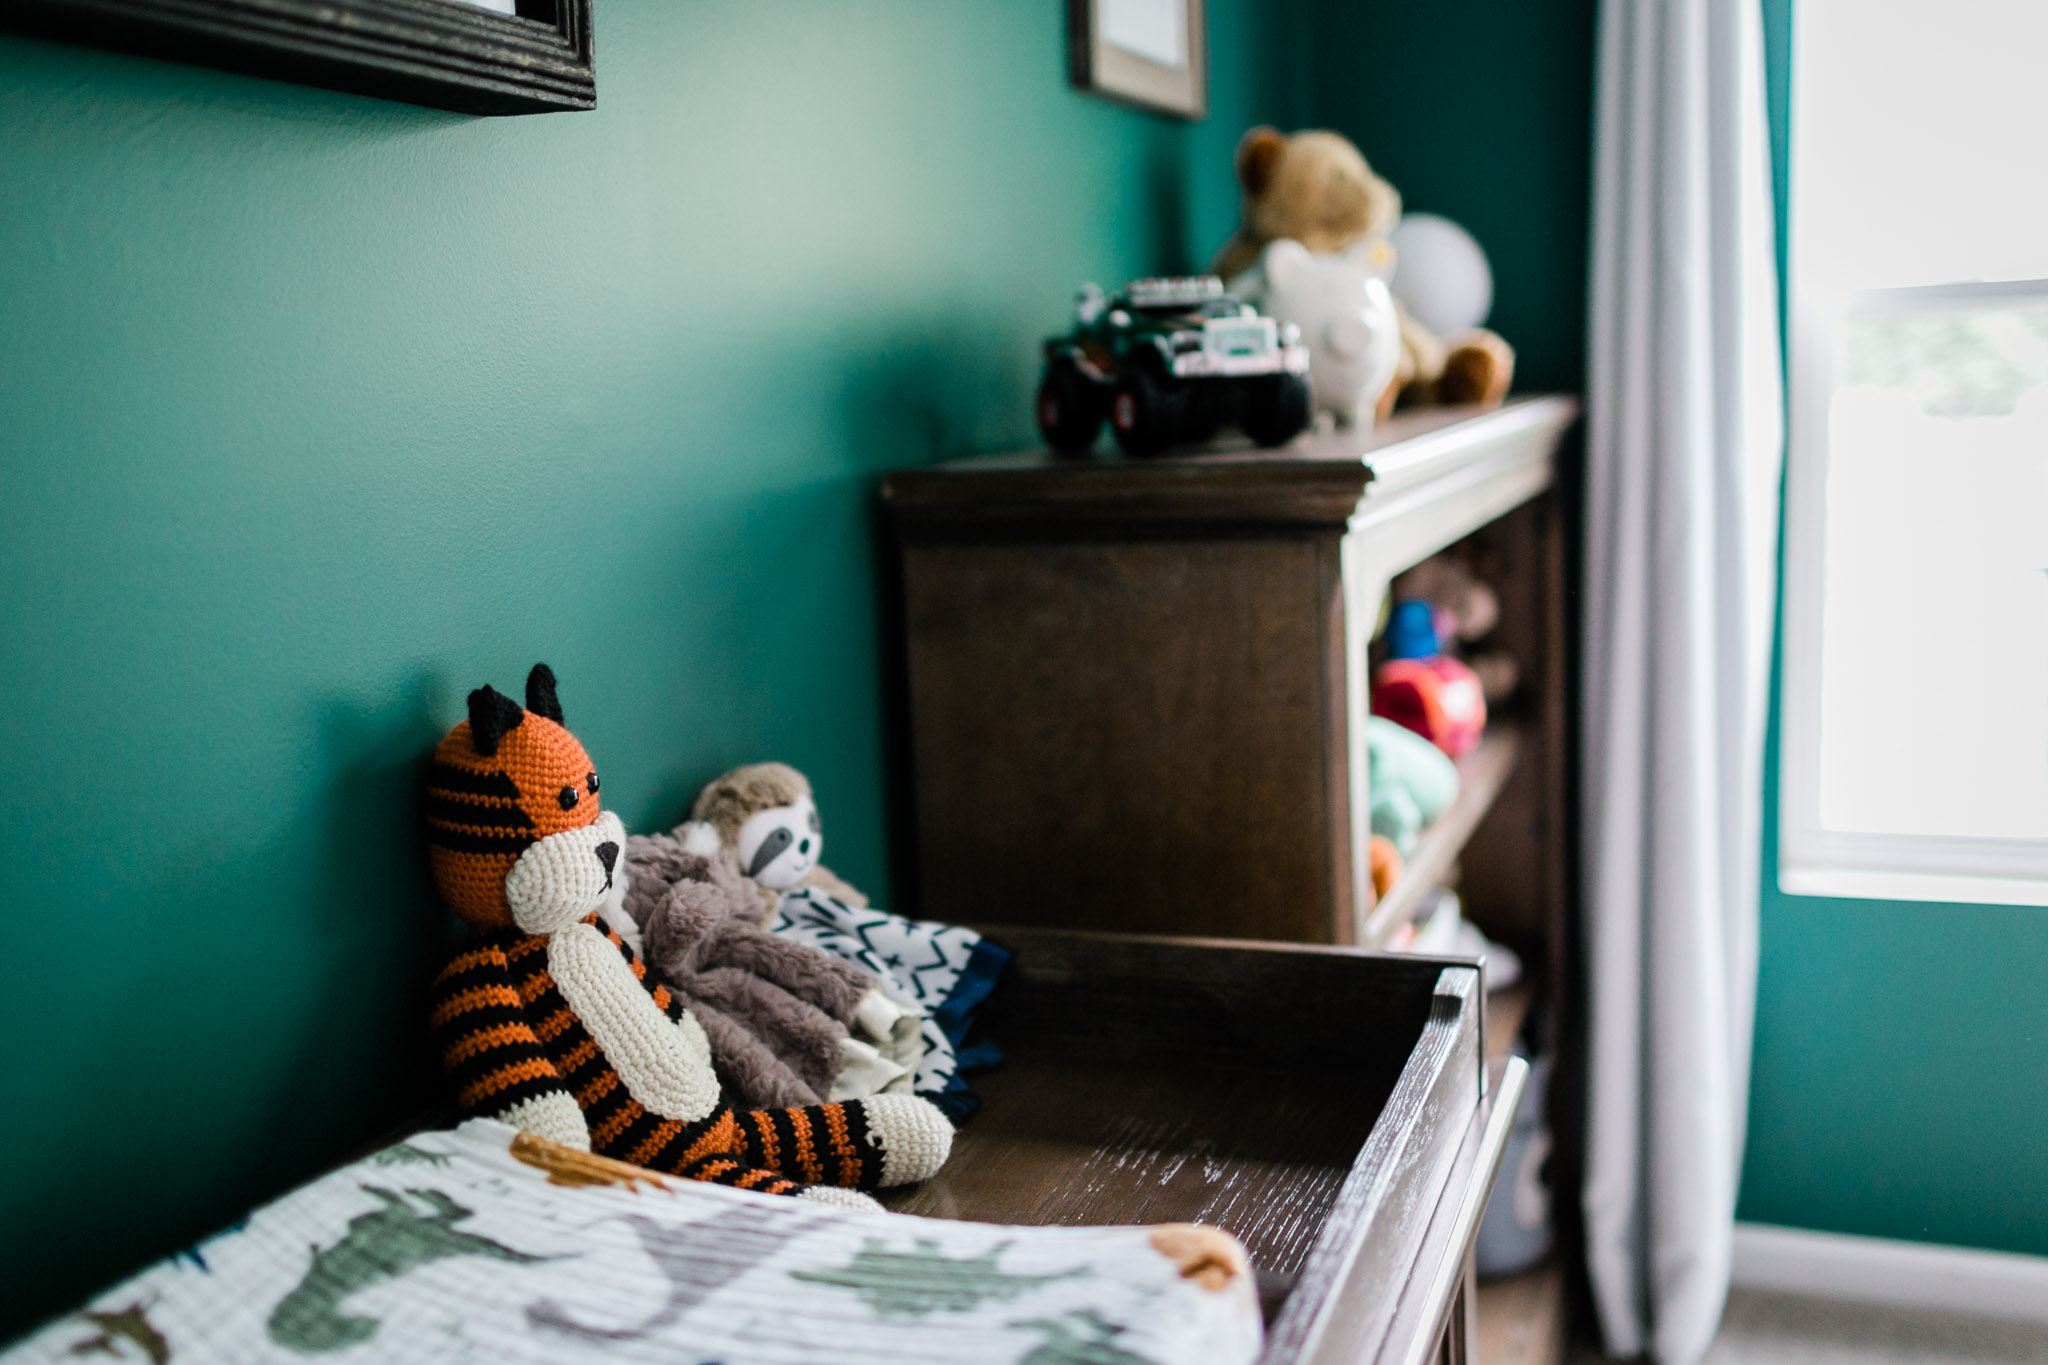 Durham Newborn Photographer | By G. Lin Photography | Nursery details in room